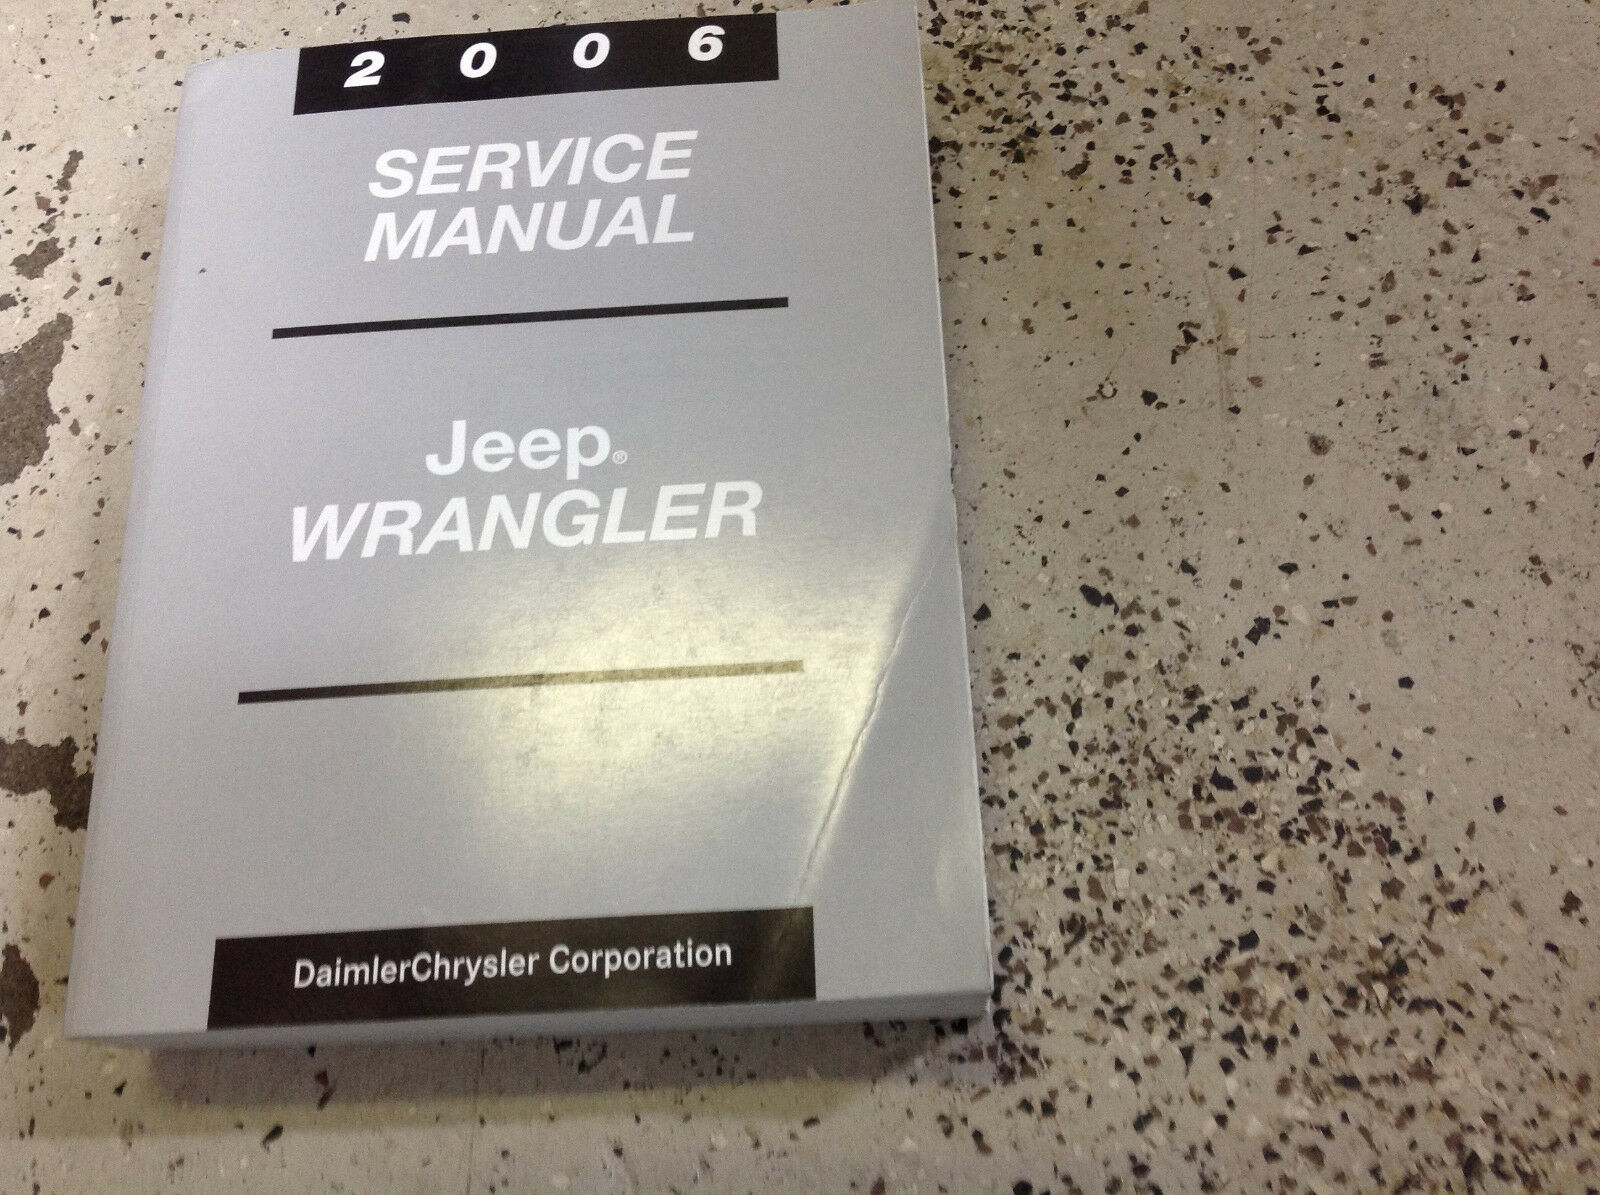 2006 JEEP WRANGLER Service Shop Workshop Repair Manual FACTORY BOOK OEM Mopar